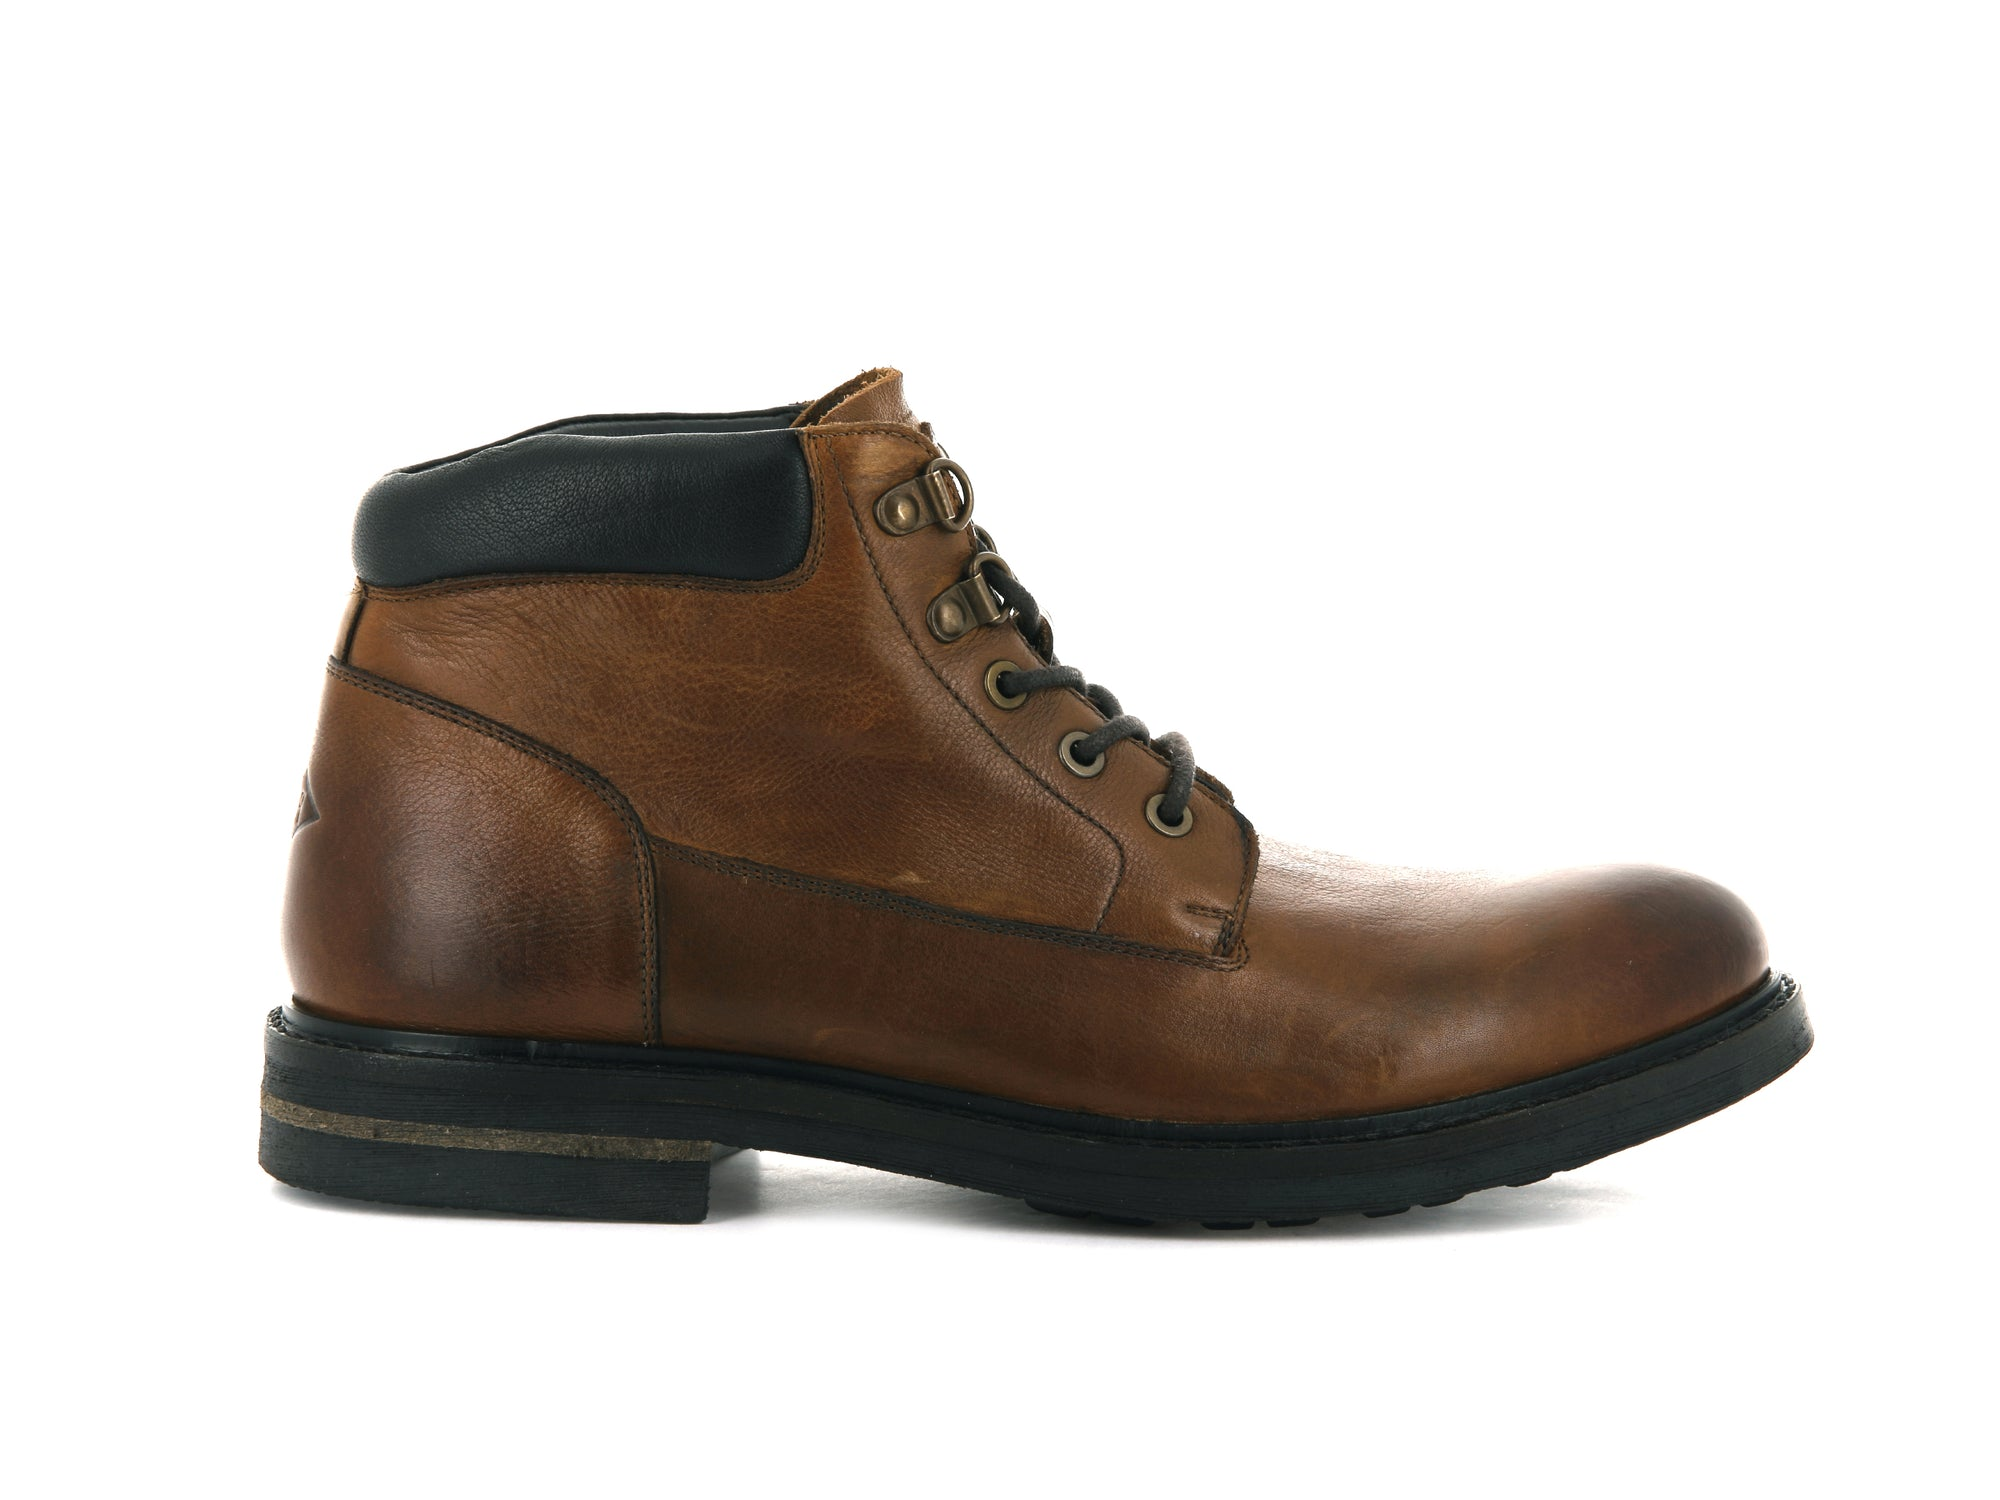 76295_427 | Bottines homme COSMOCRATE MLD | TAN